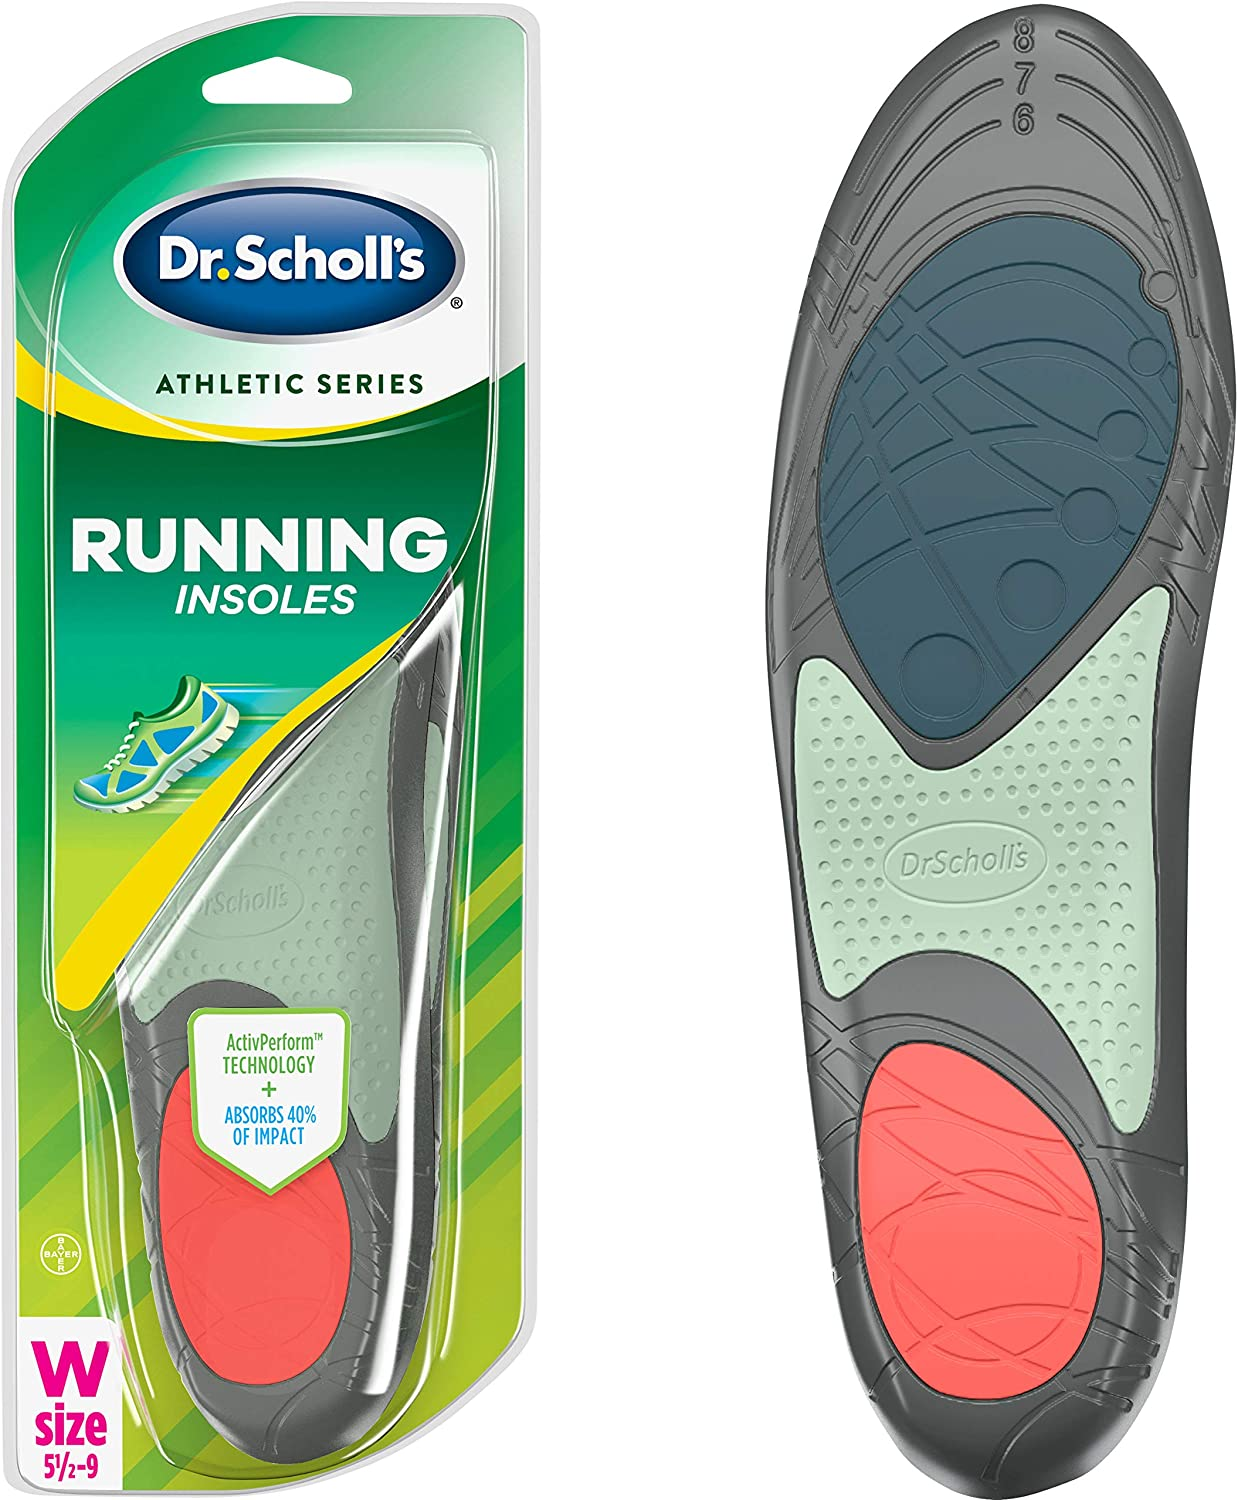 Dr. Scholl's RUNNING Insoles // Reduce Shock and Prevent Common Running Injuries: Runner's Knee, Plantar Fasciitis and Shin Splints (for Women's 5.5-9, also available for Men's 7.5-10 & Men's 10.5-14): Health & Personal Care